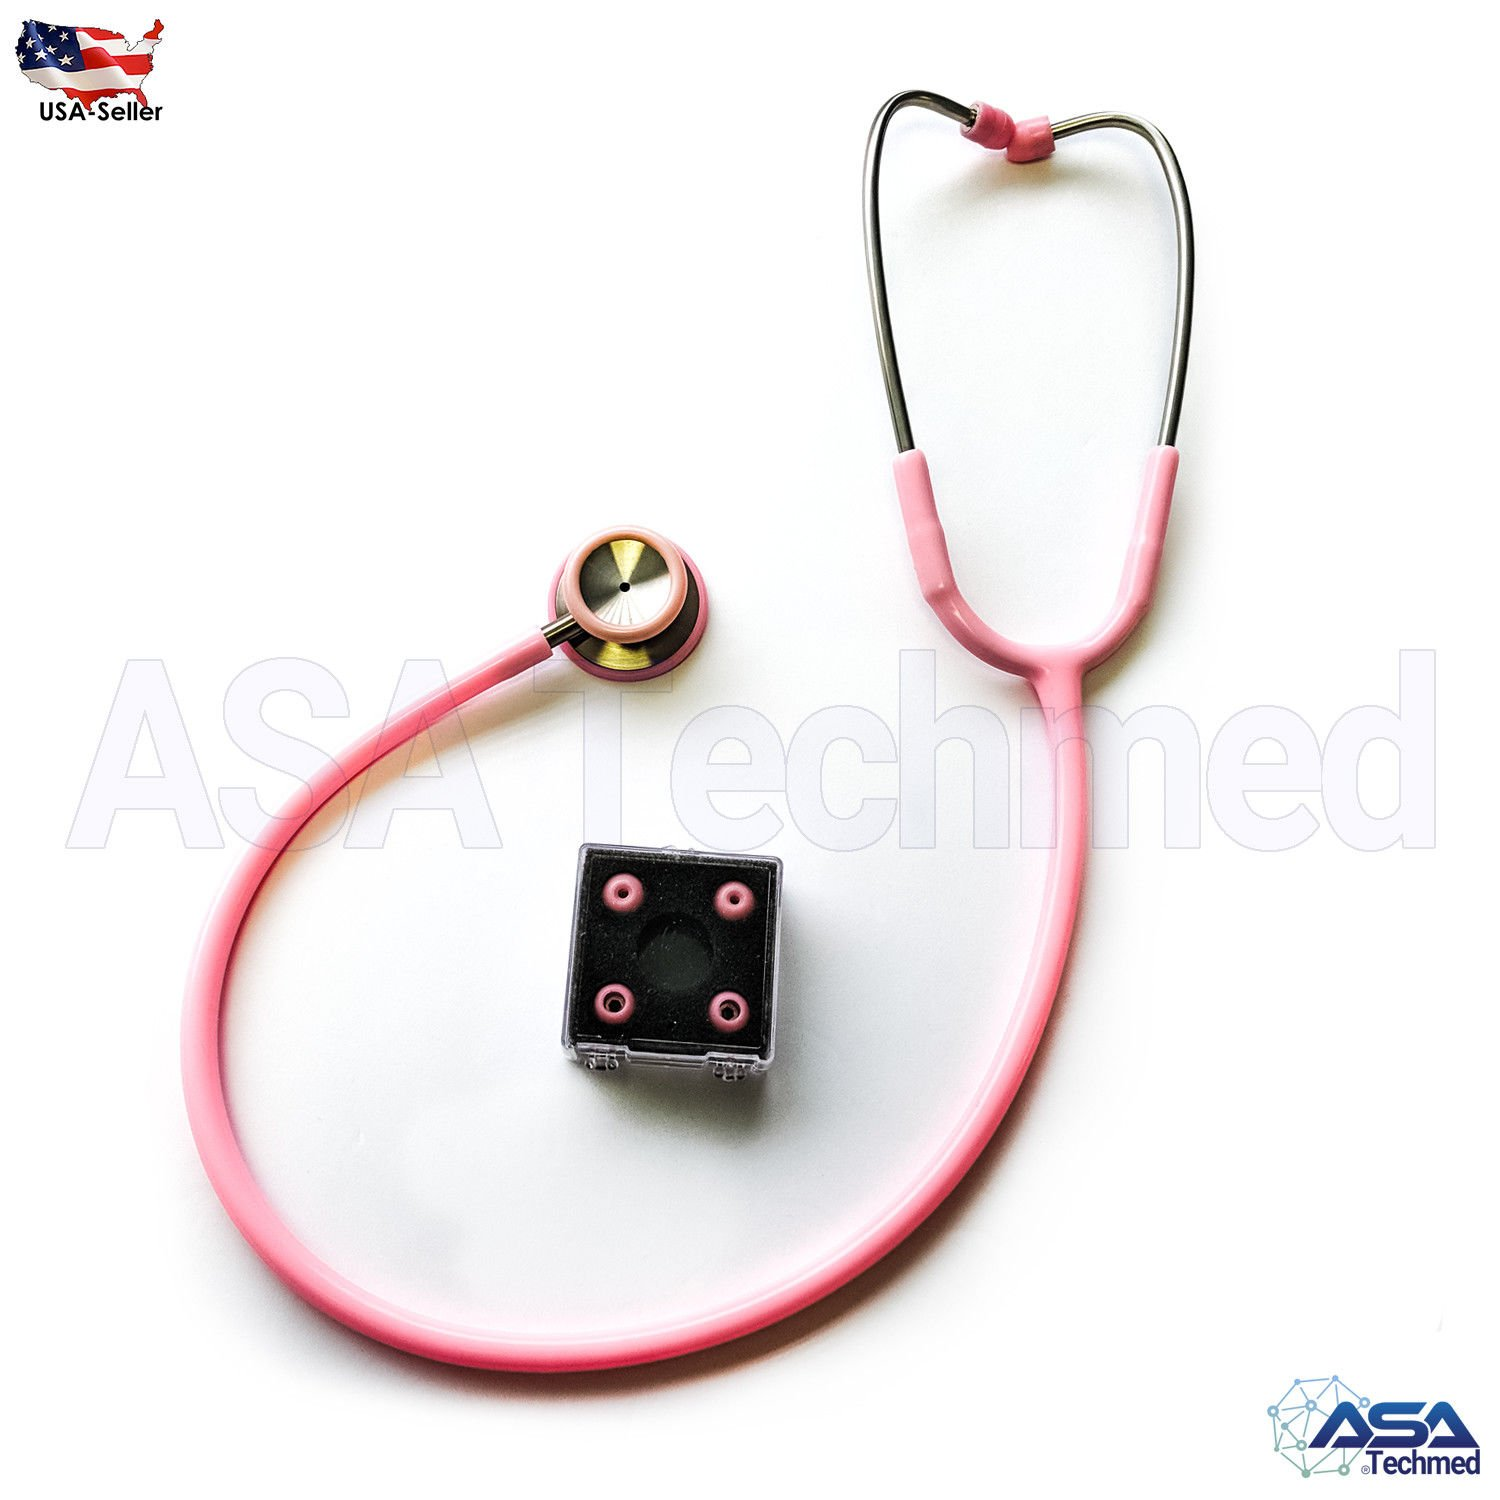 Medical Classic Stethoscope Multiple Colors - Ideal for Nurse, EMT, First Responders, Firefighter, CNA, Medical Assistance and More (Pink)